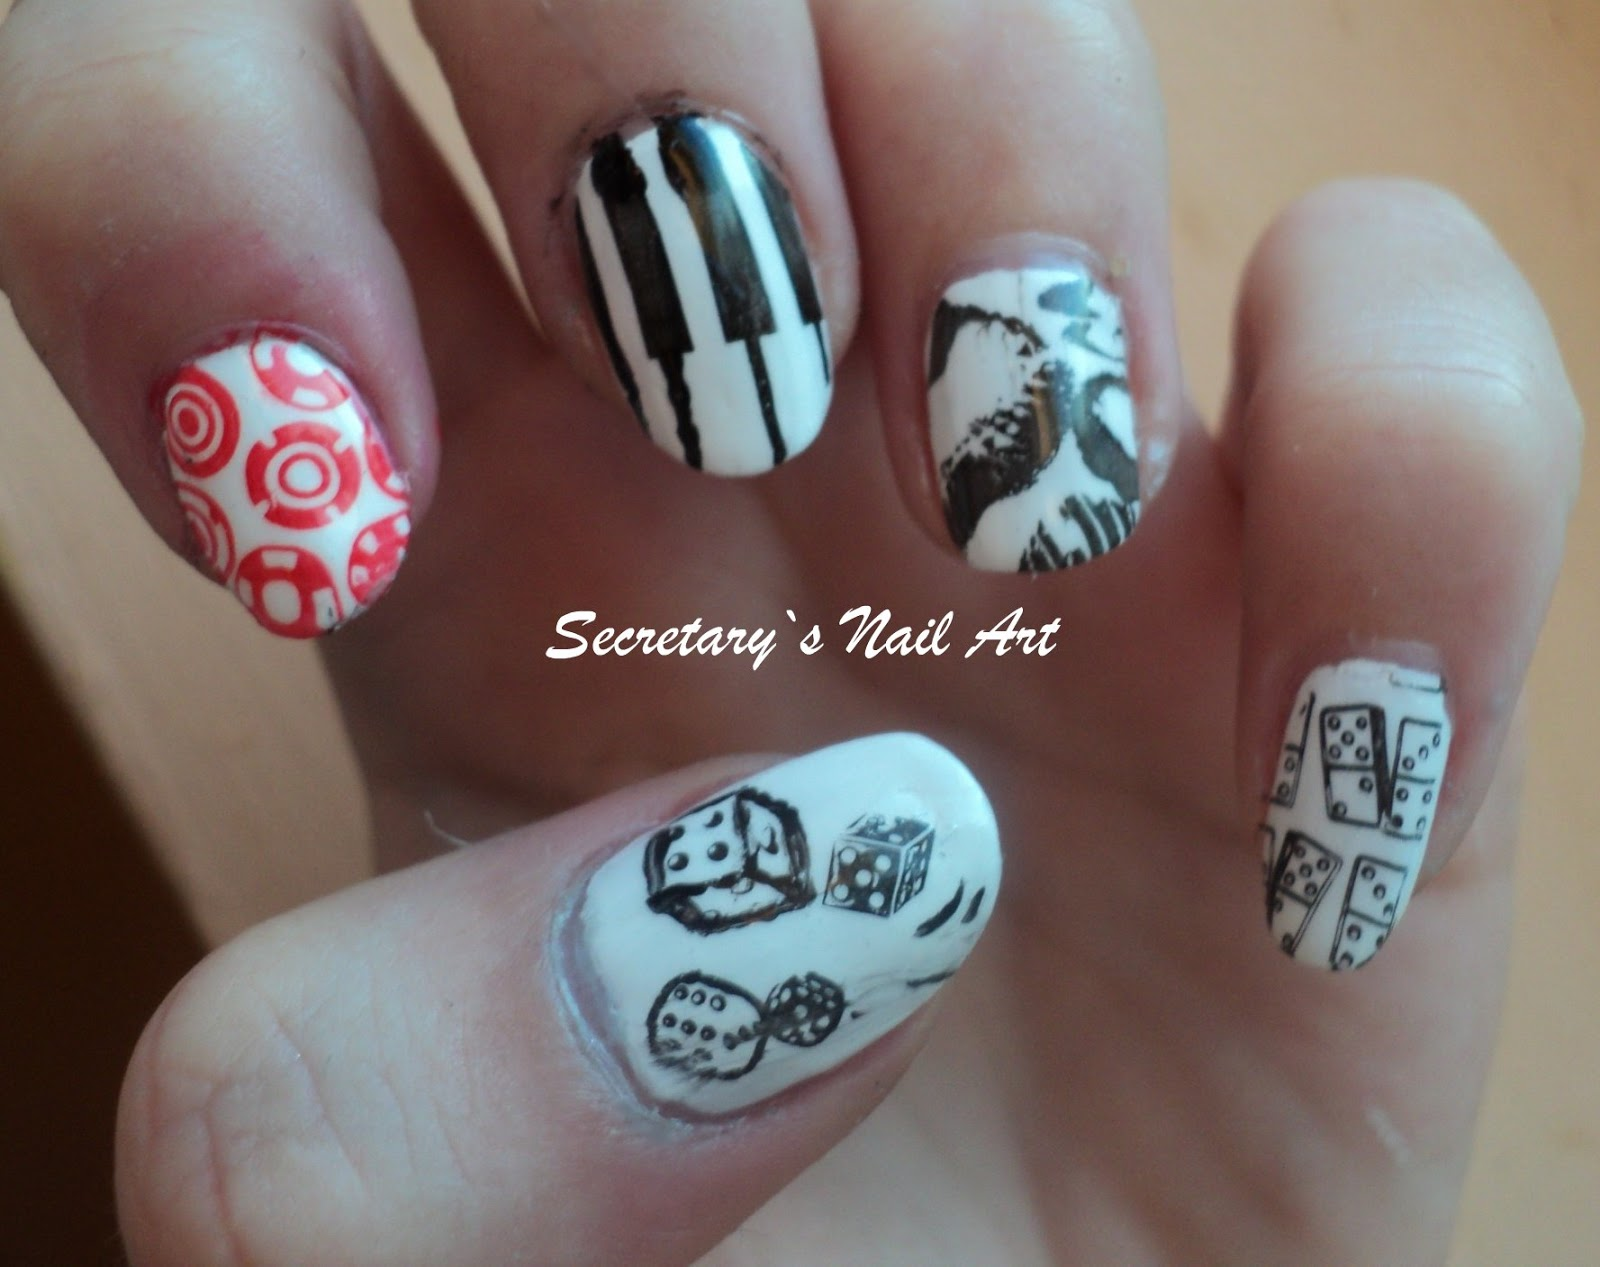 Casino Royale Secretarys Nail Art